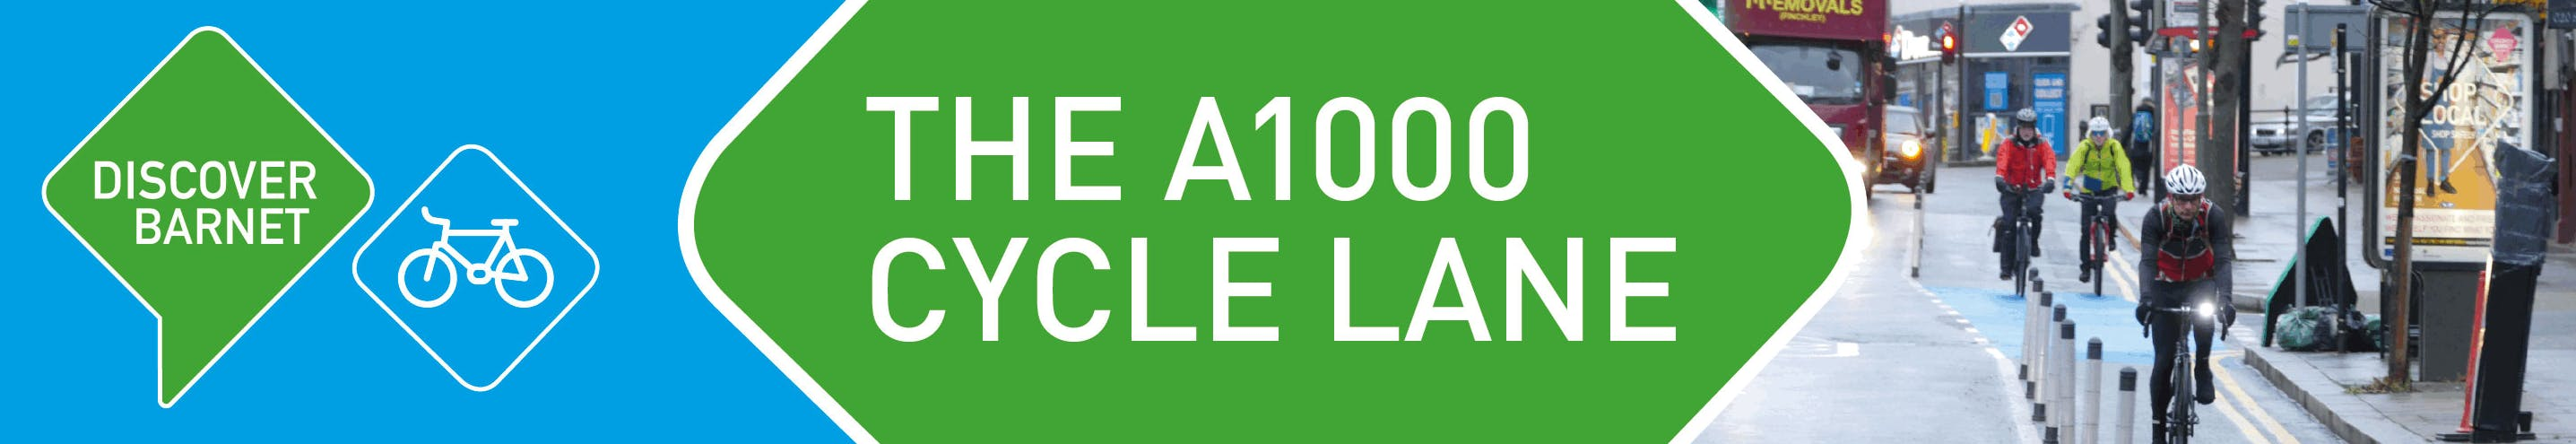 The A1000 cycle lane